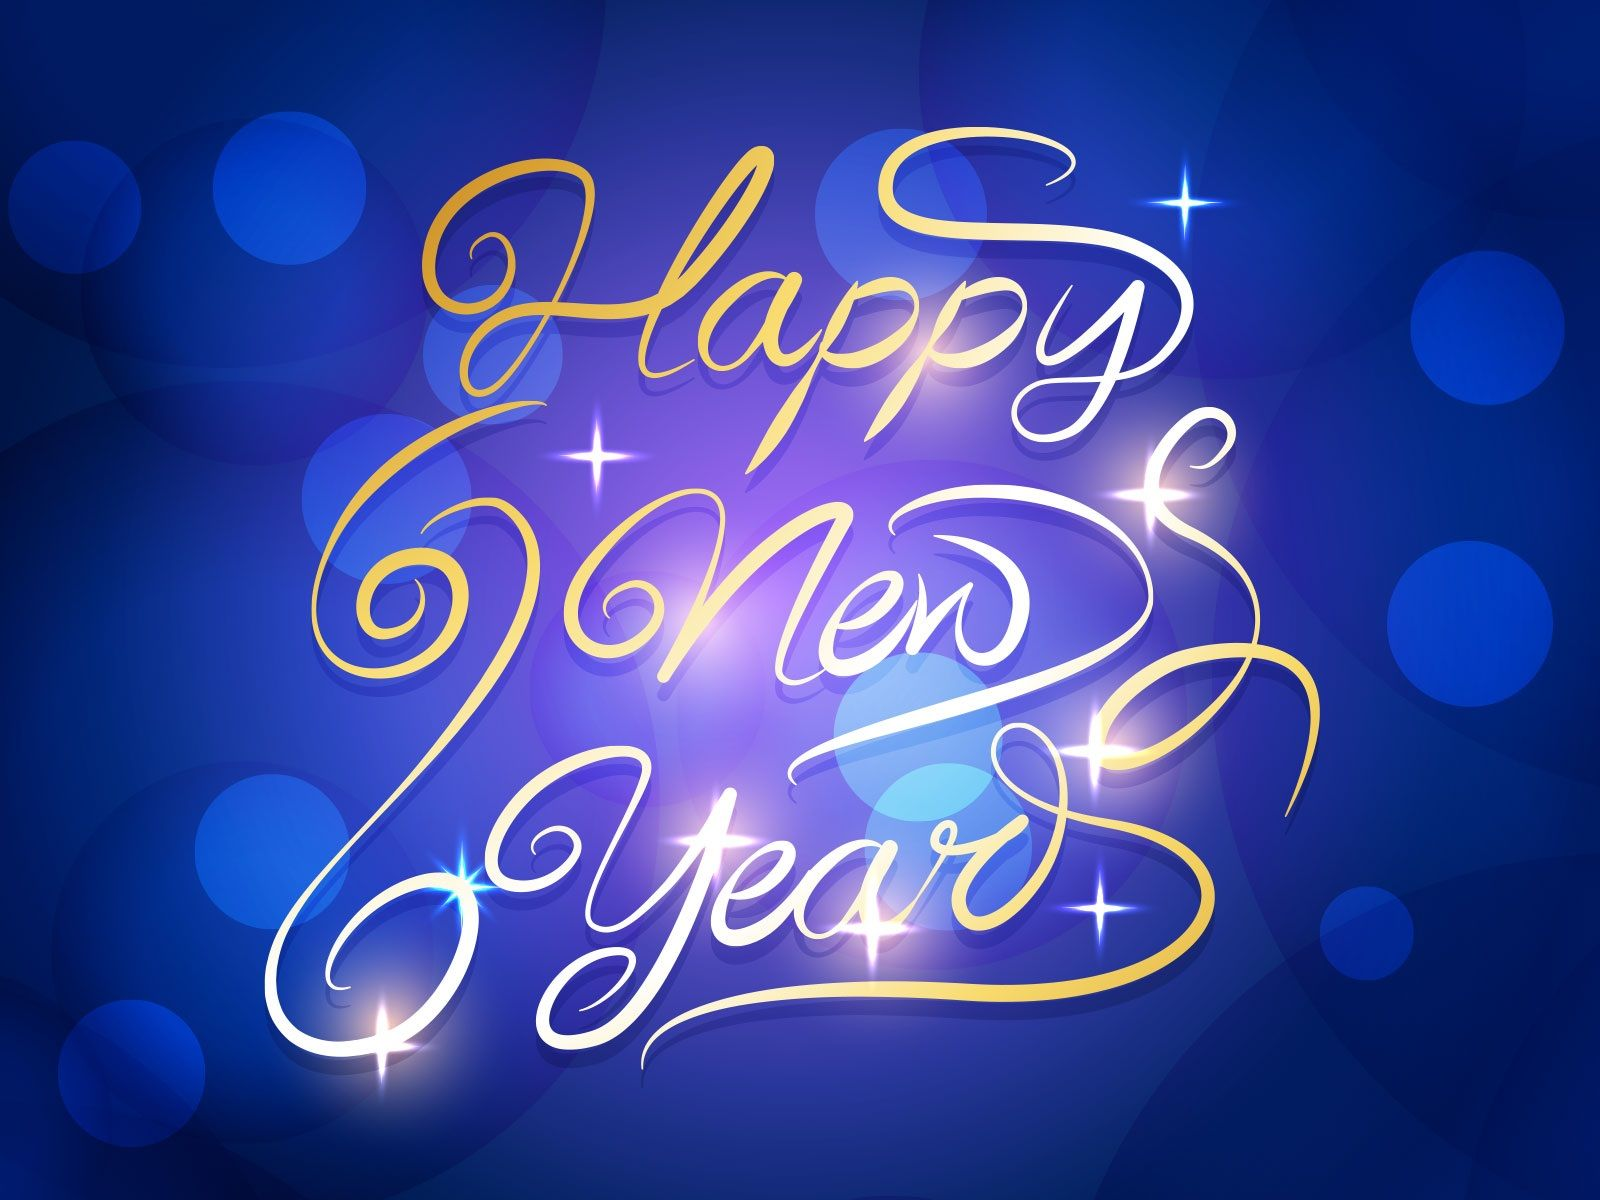 Happy New Year 2015 Wallpapers Images New Year Pinterest